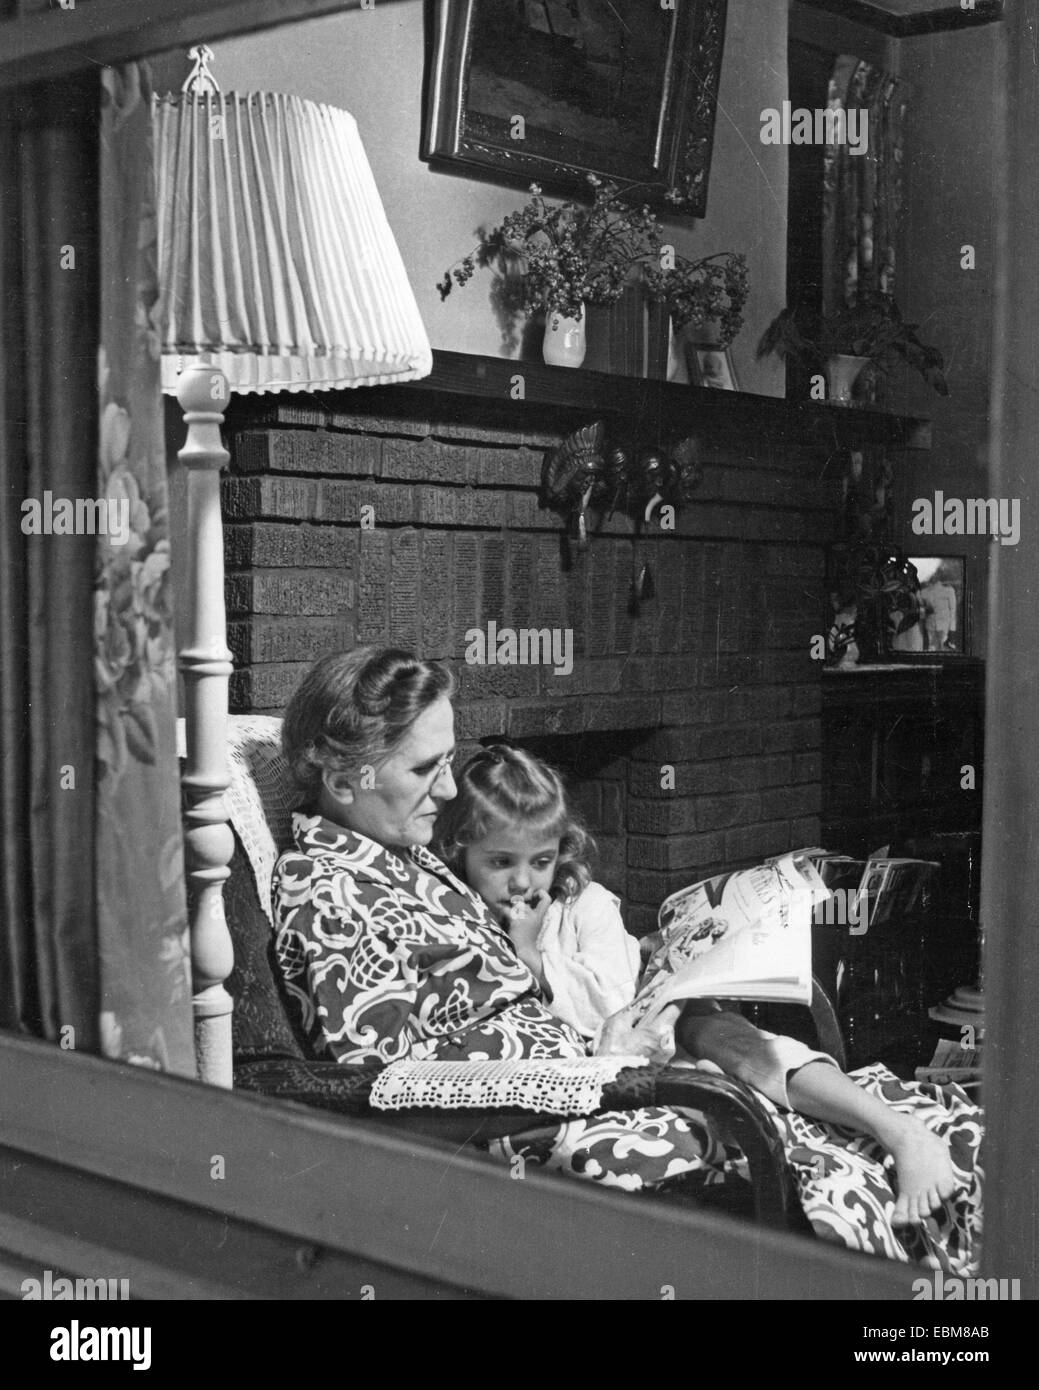 AMERICAN FAMILY GROUP - Grandmother reads a story about 1945 - Stock Image